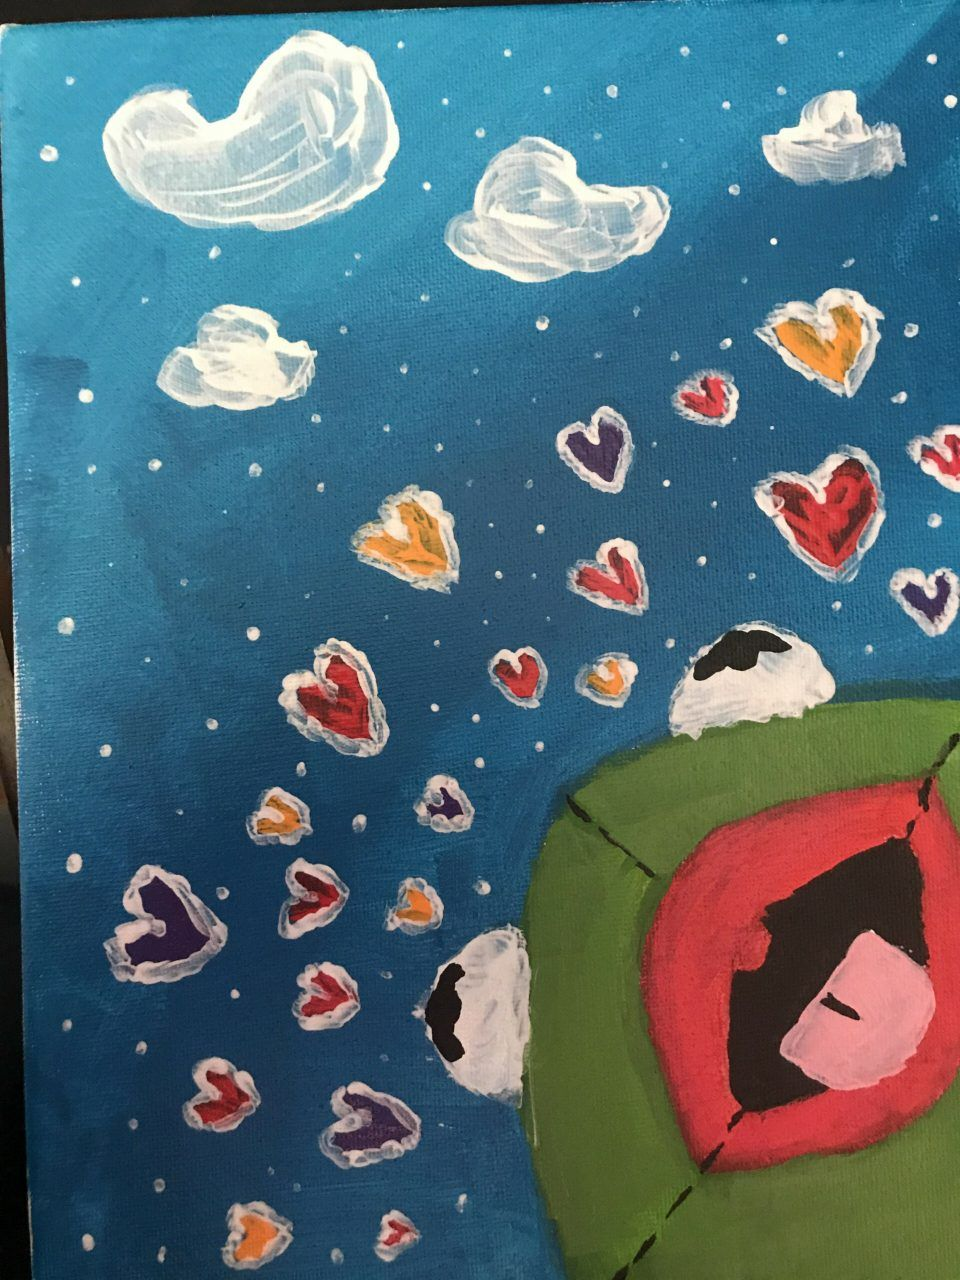 Kermit With Hearts Painting : kermit, hearts, painting, Senior, Painting